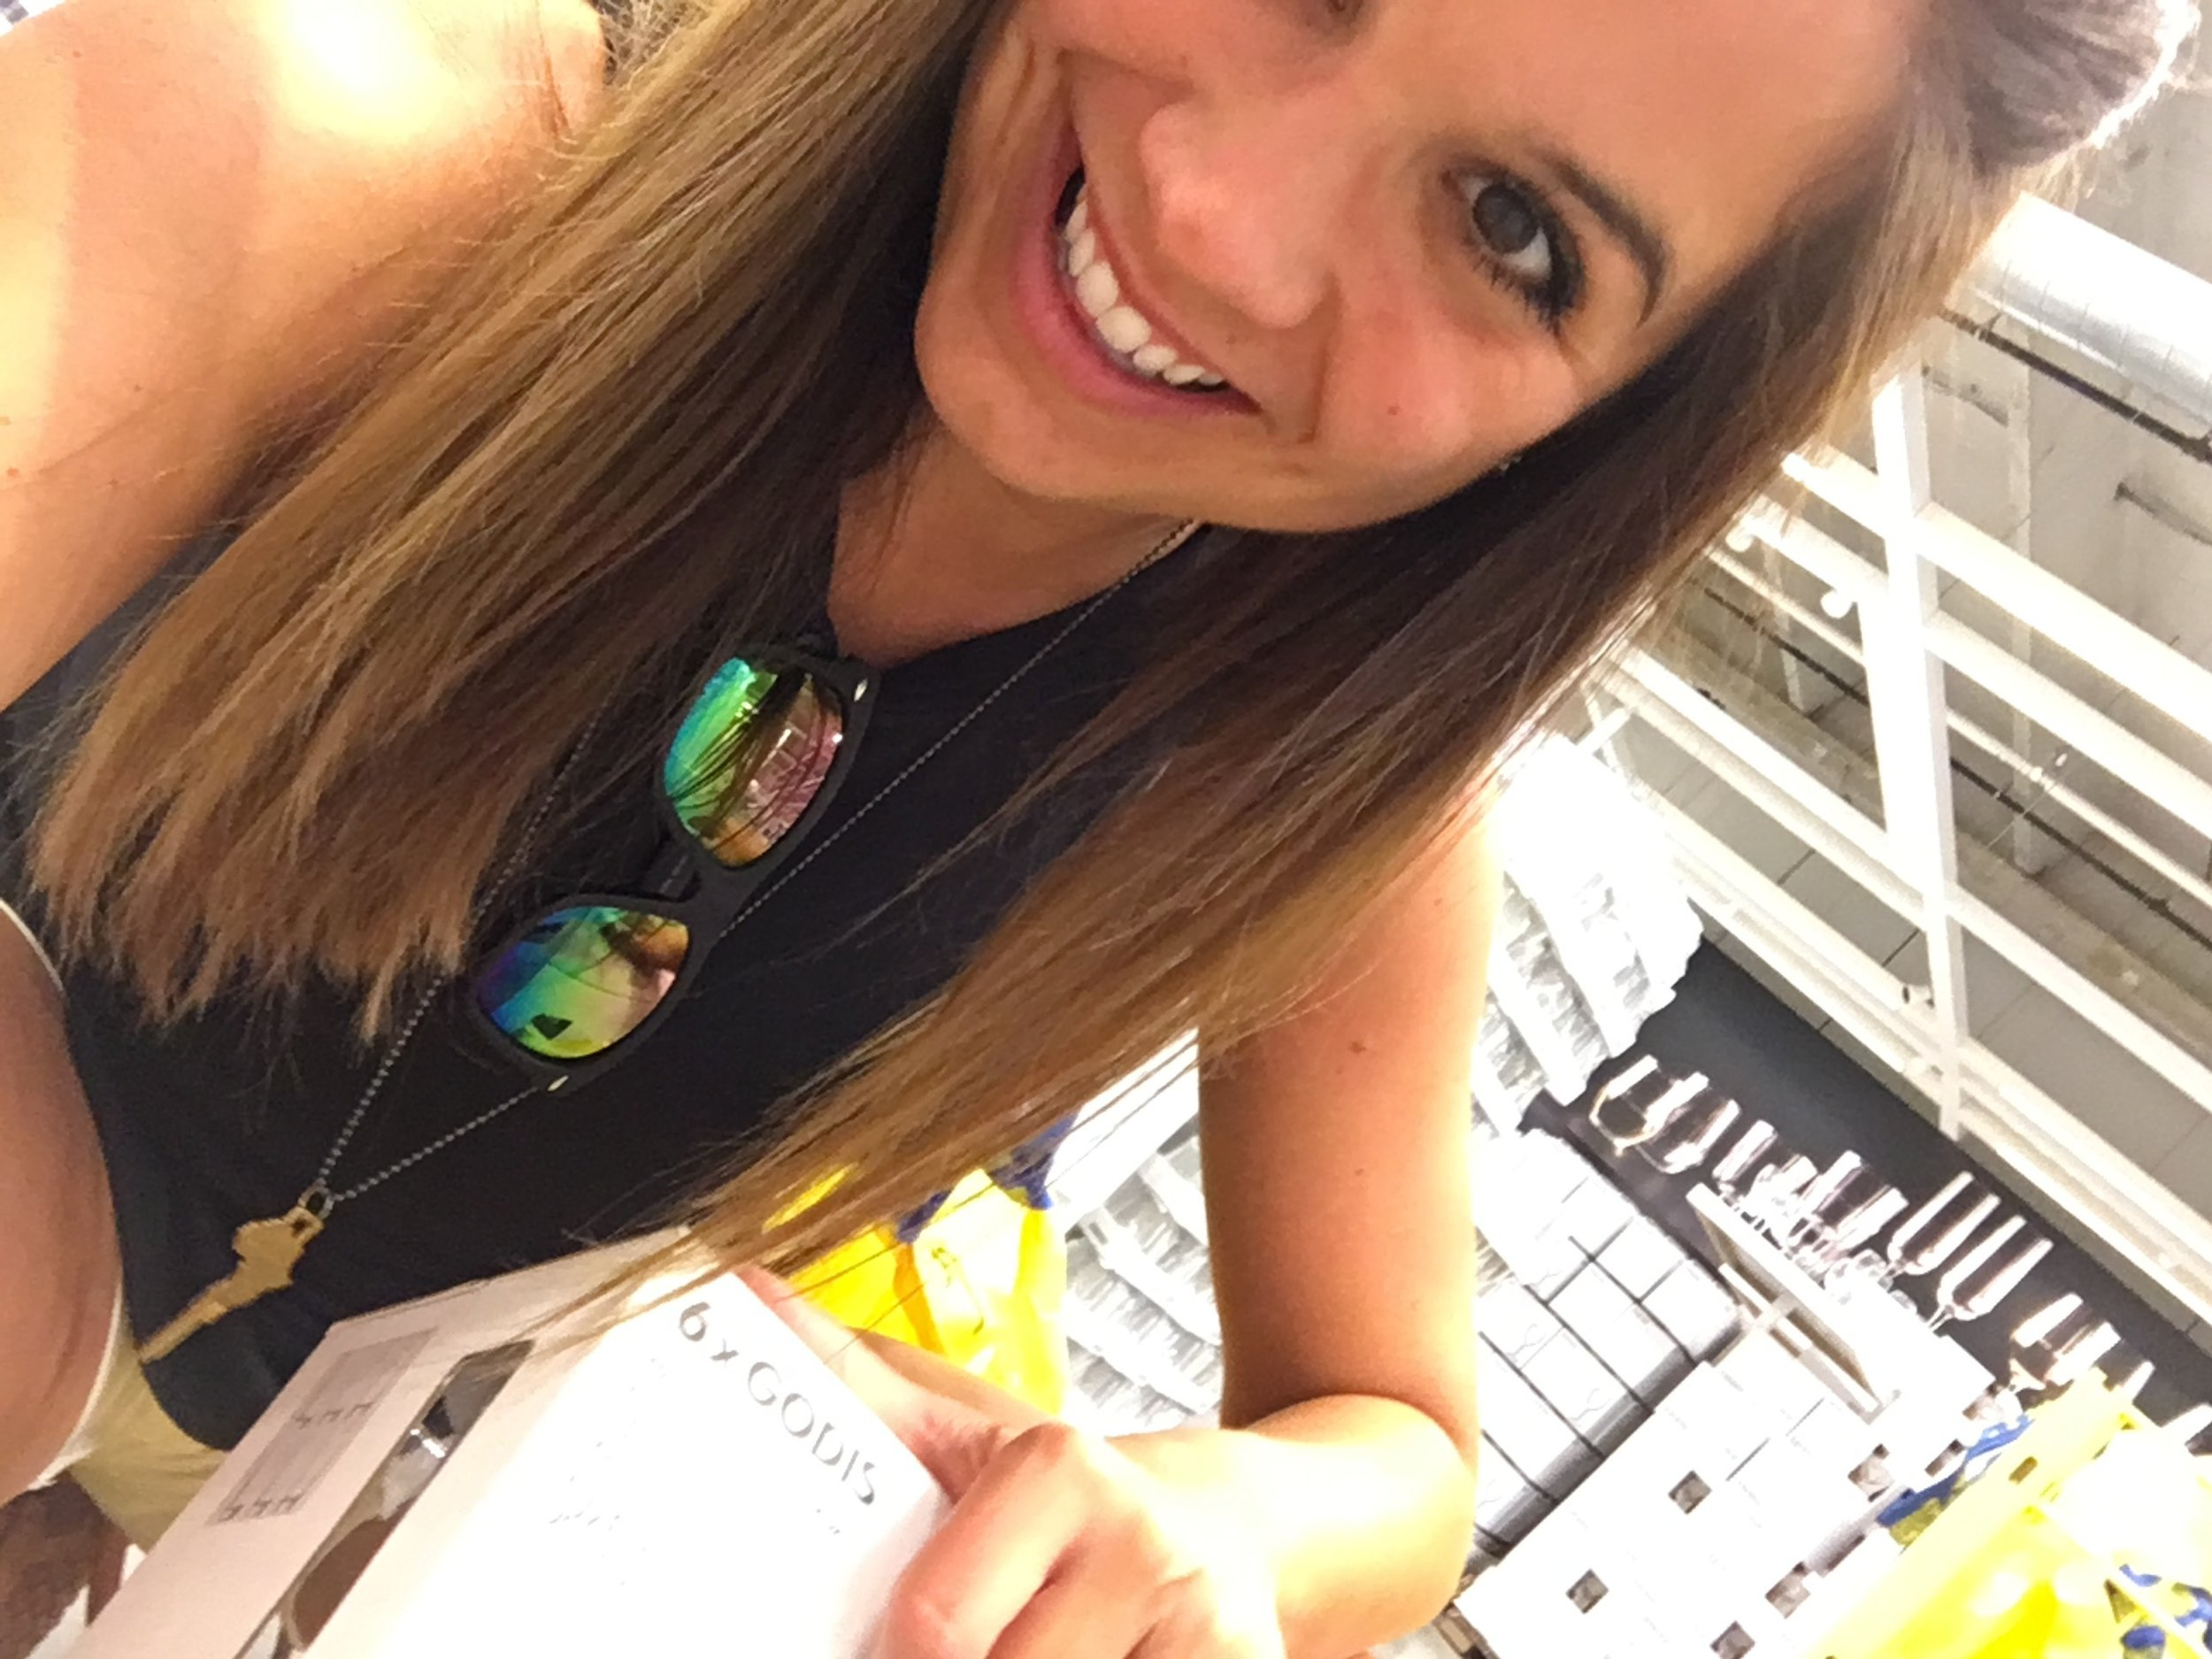 ^Me, on the floor at Ikea.